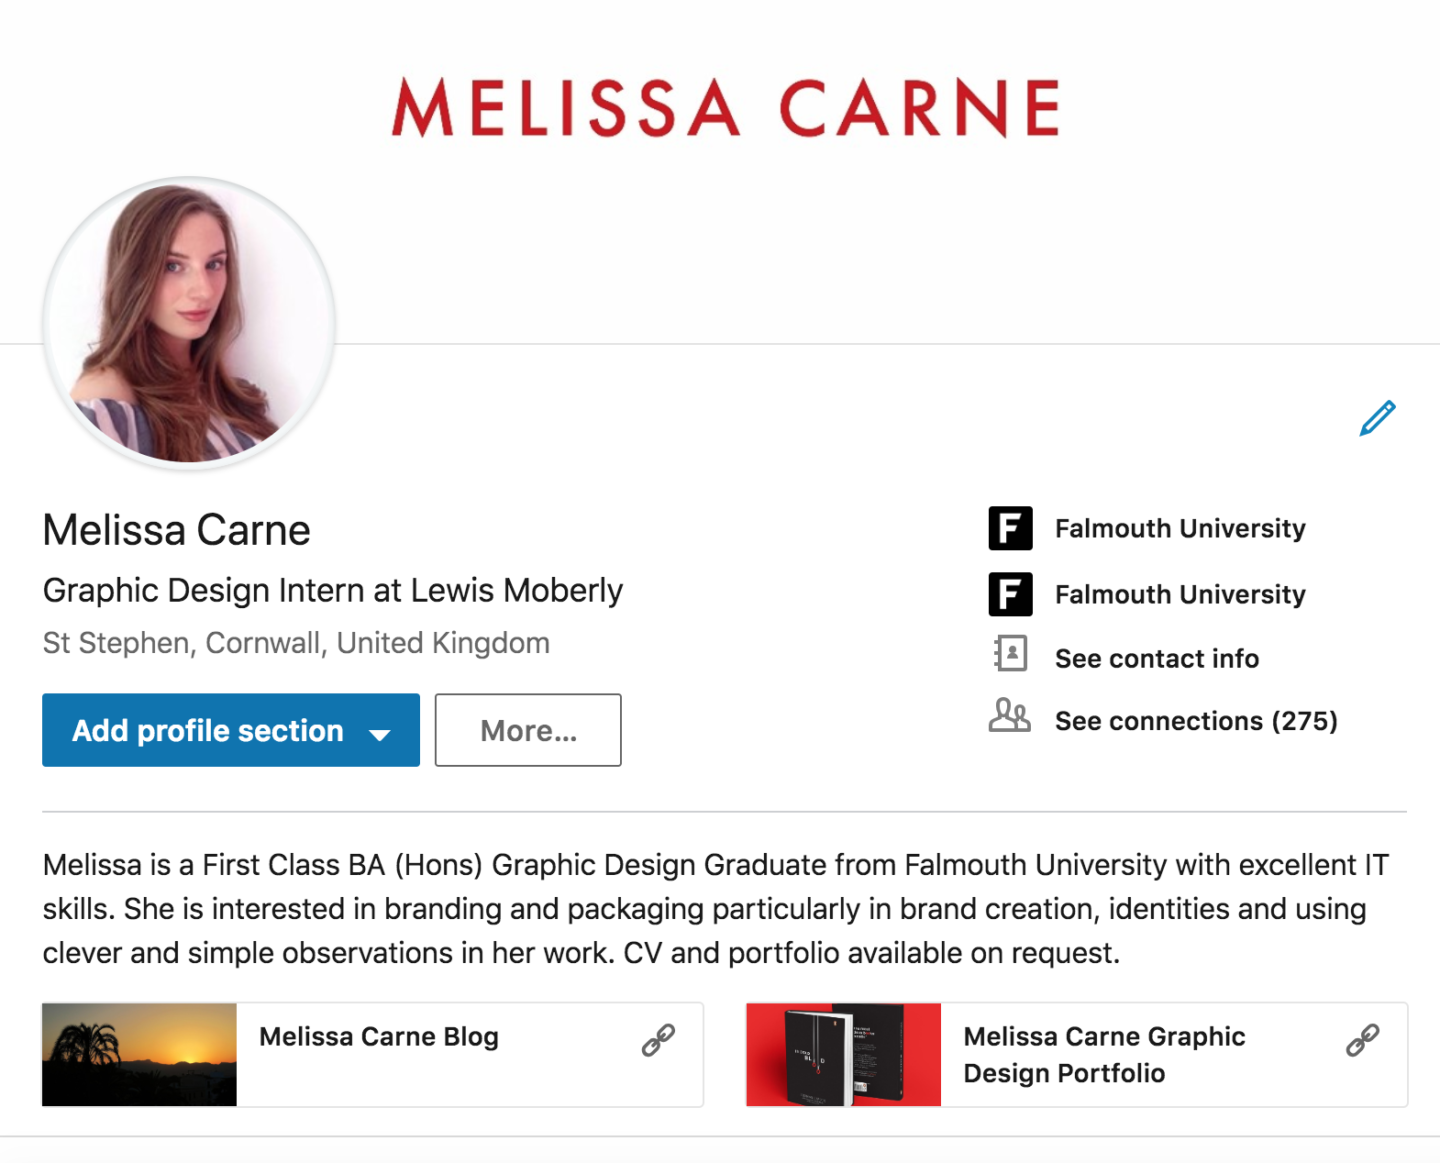 melissa carne freelance graphic designer linkedin profile